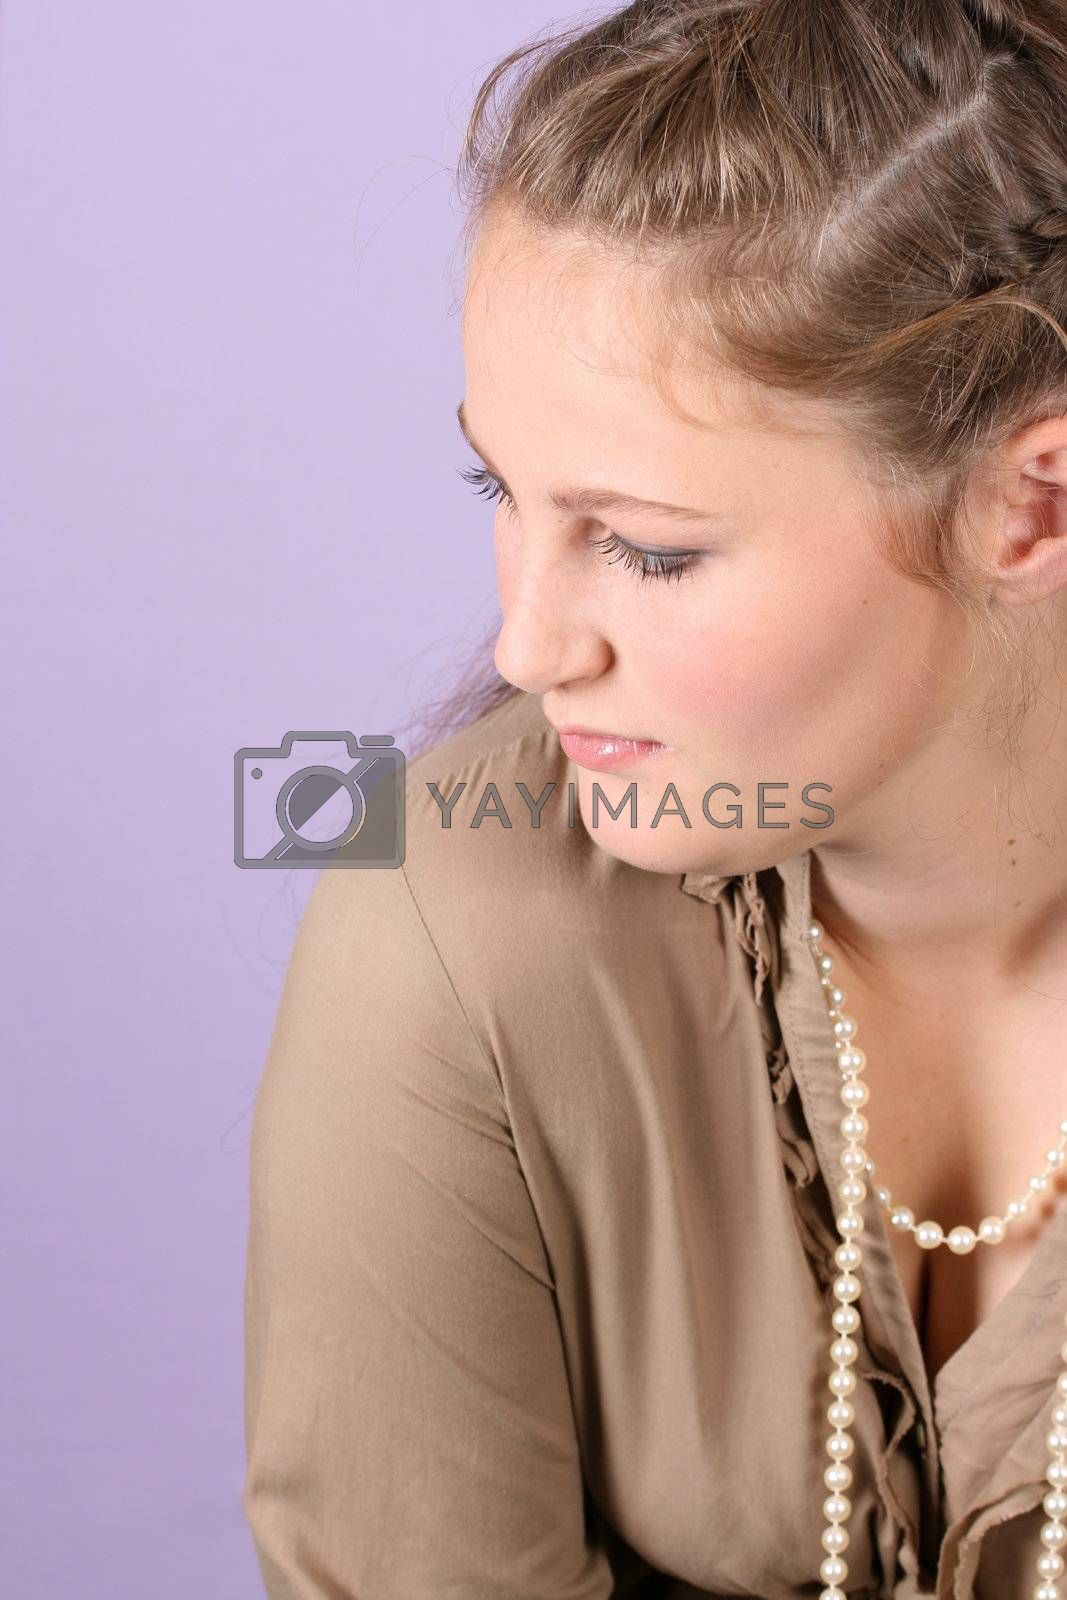 Beautiful teenage female against purple background, wearing pearls